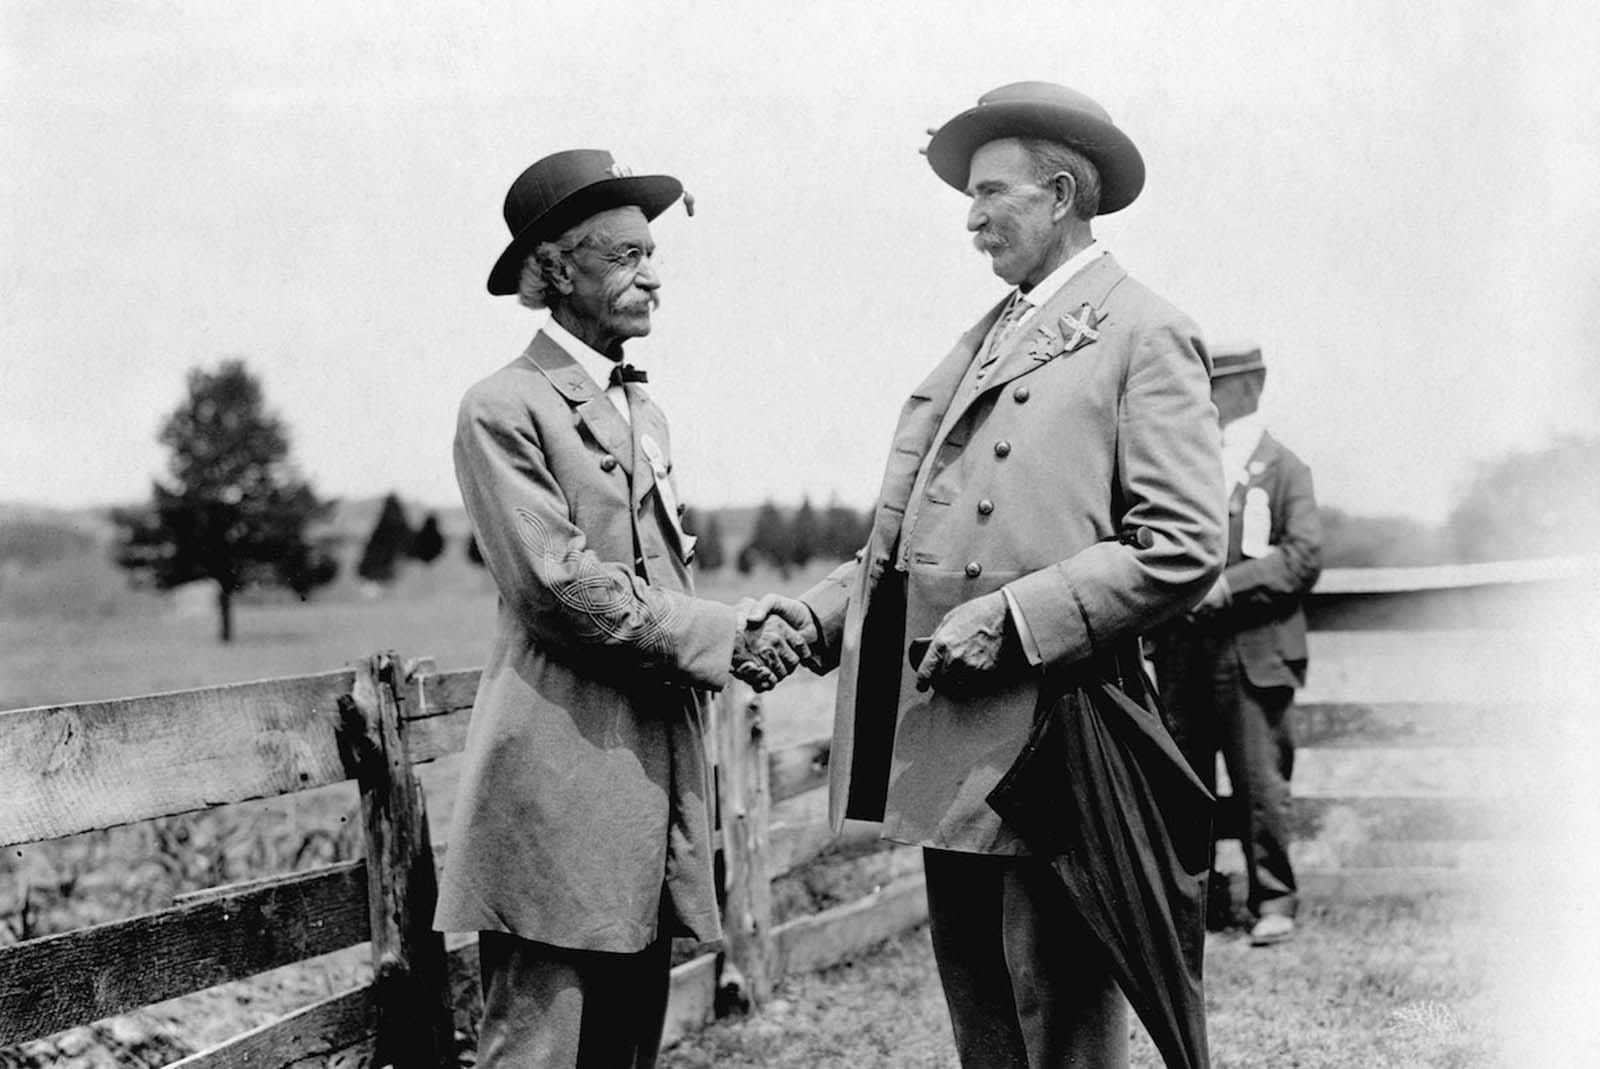 Manassas, Virginia — Veterans of the Civil War meet on the Bull Run Battlefield for a reunion celebration. 1913.